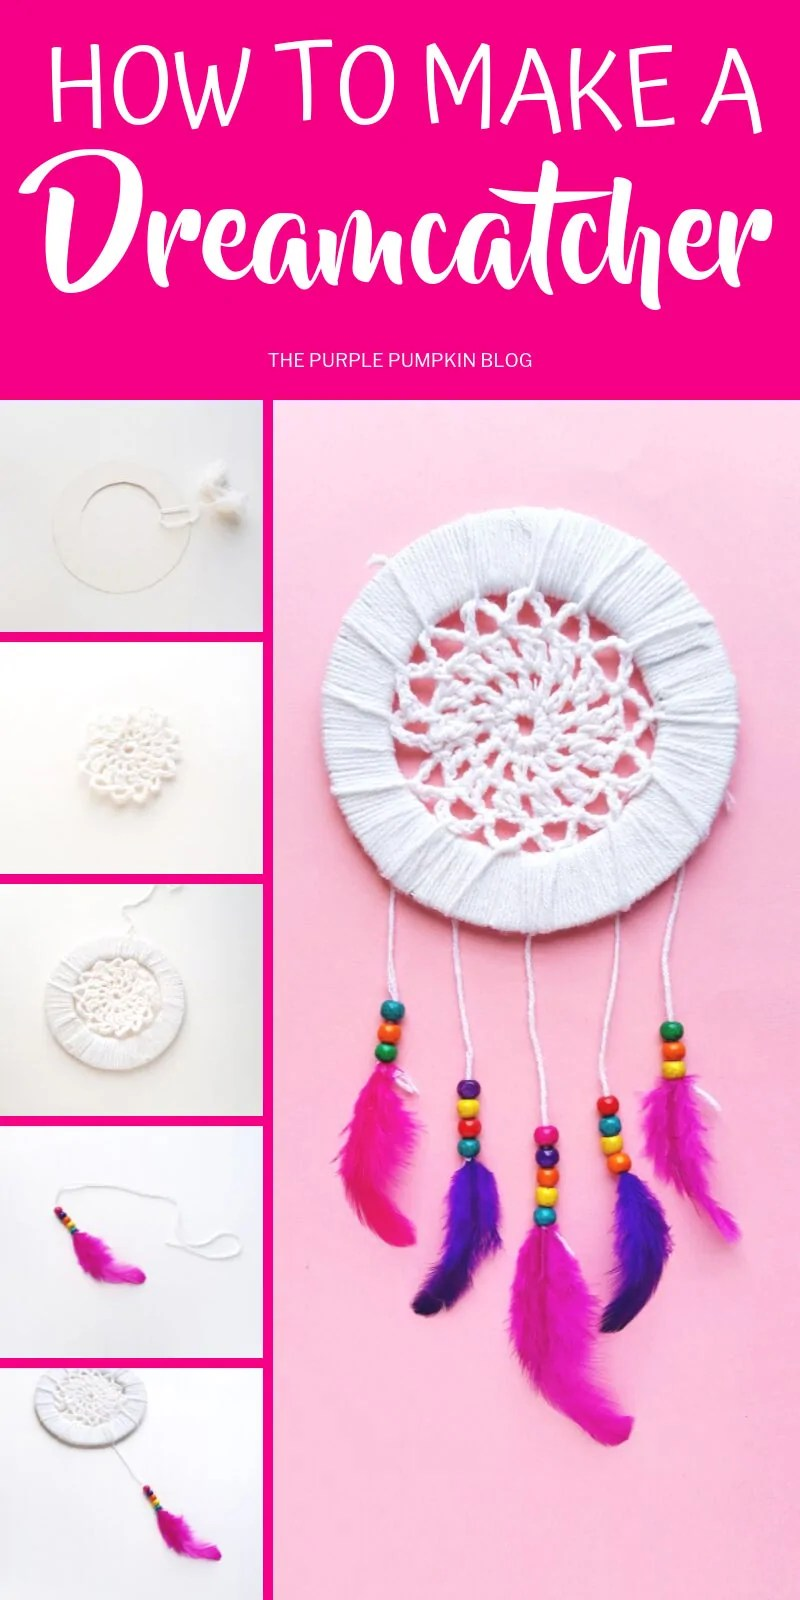 Images of steps demonstrating how to make a dreamcatcher. With text overlay saying the same